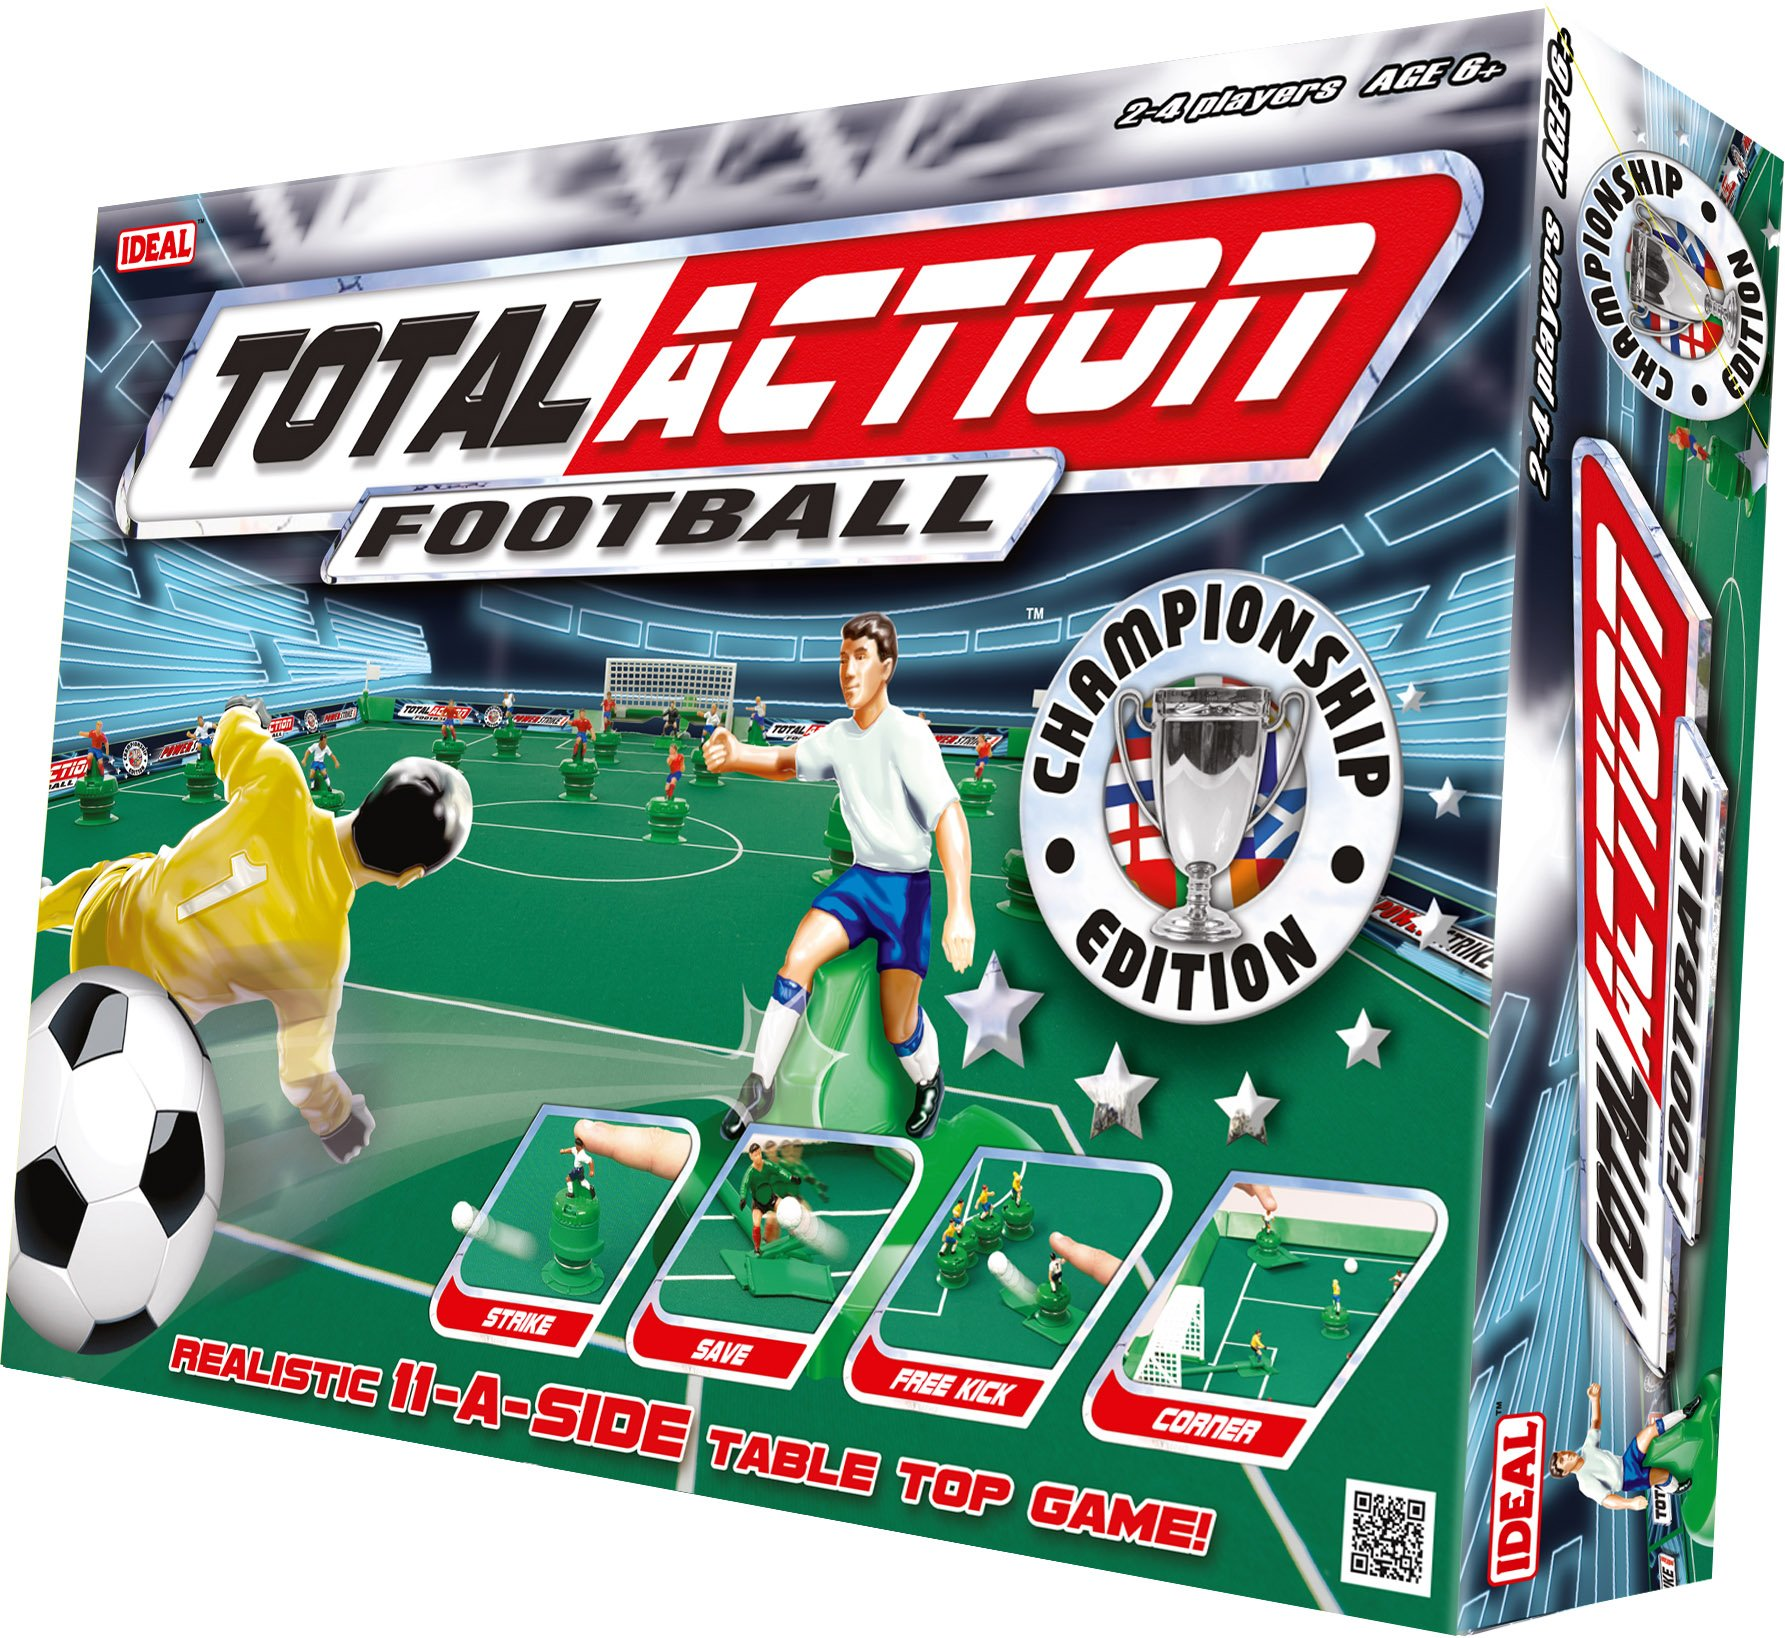 Football Players Toys For Toddlers : Total action football realistic toy table top